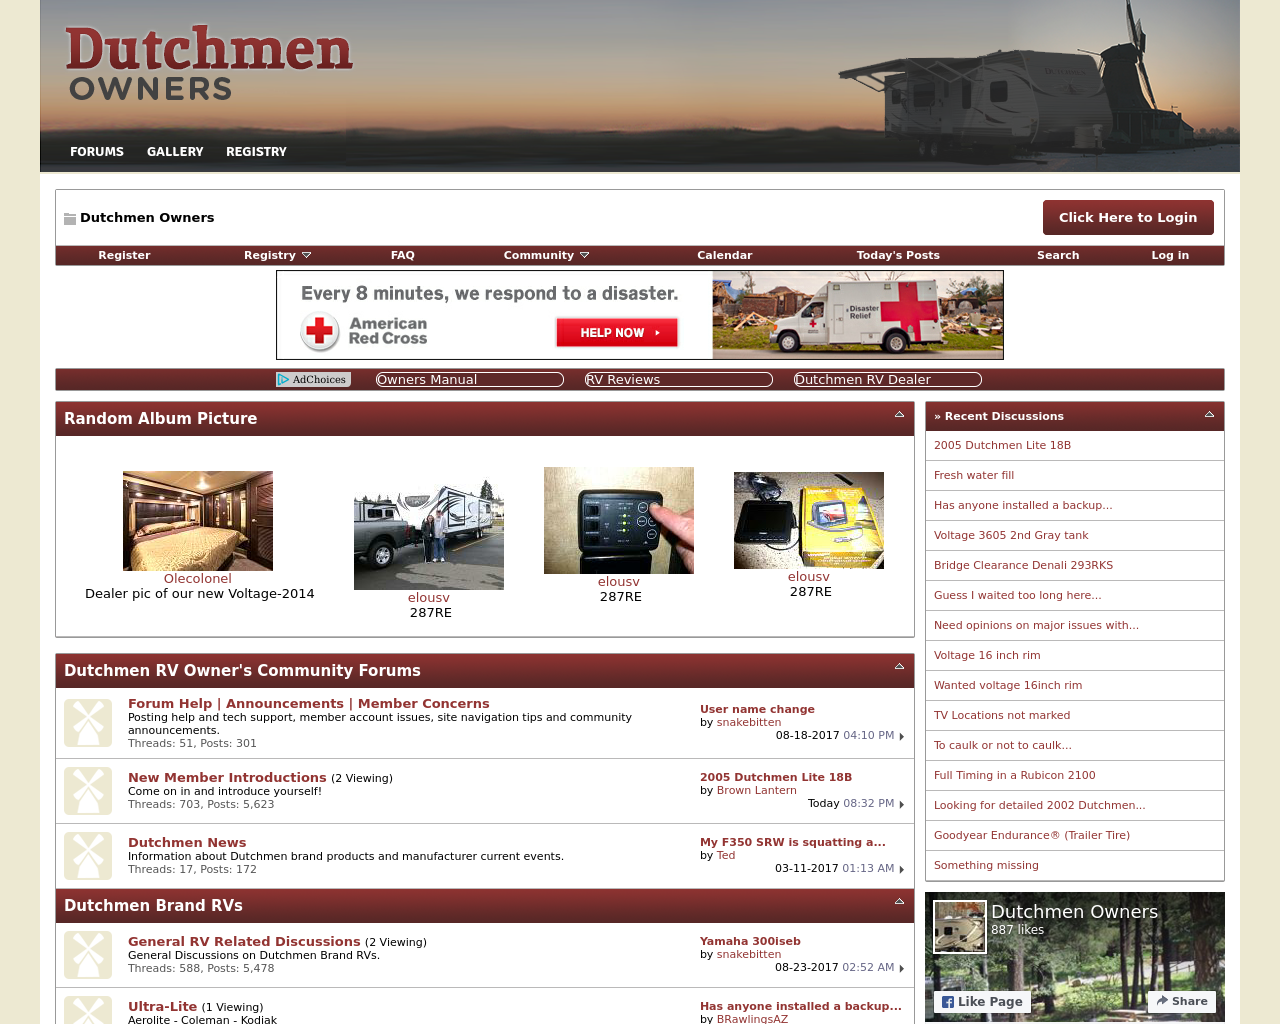 Dutchmen-Owners-Advertising-Reviews-Pricing